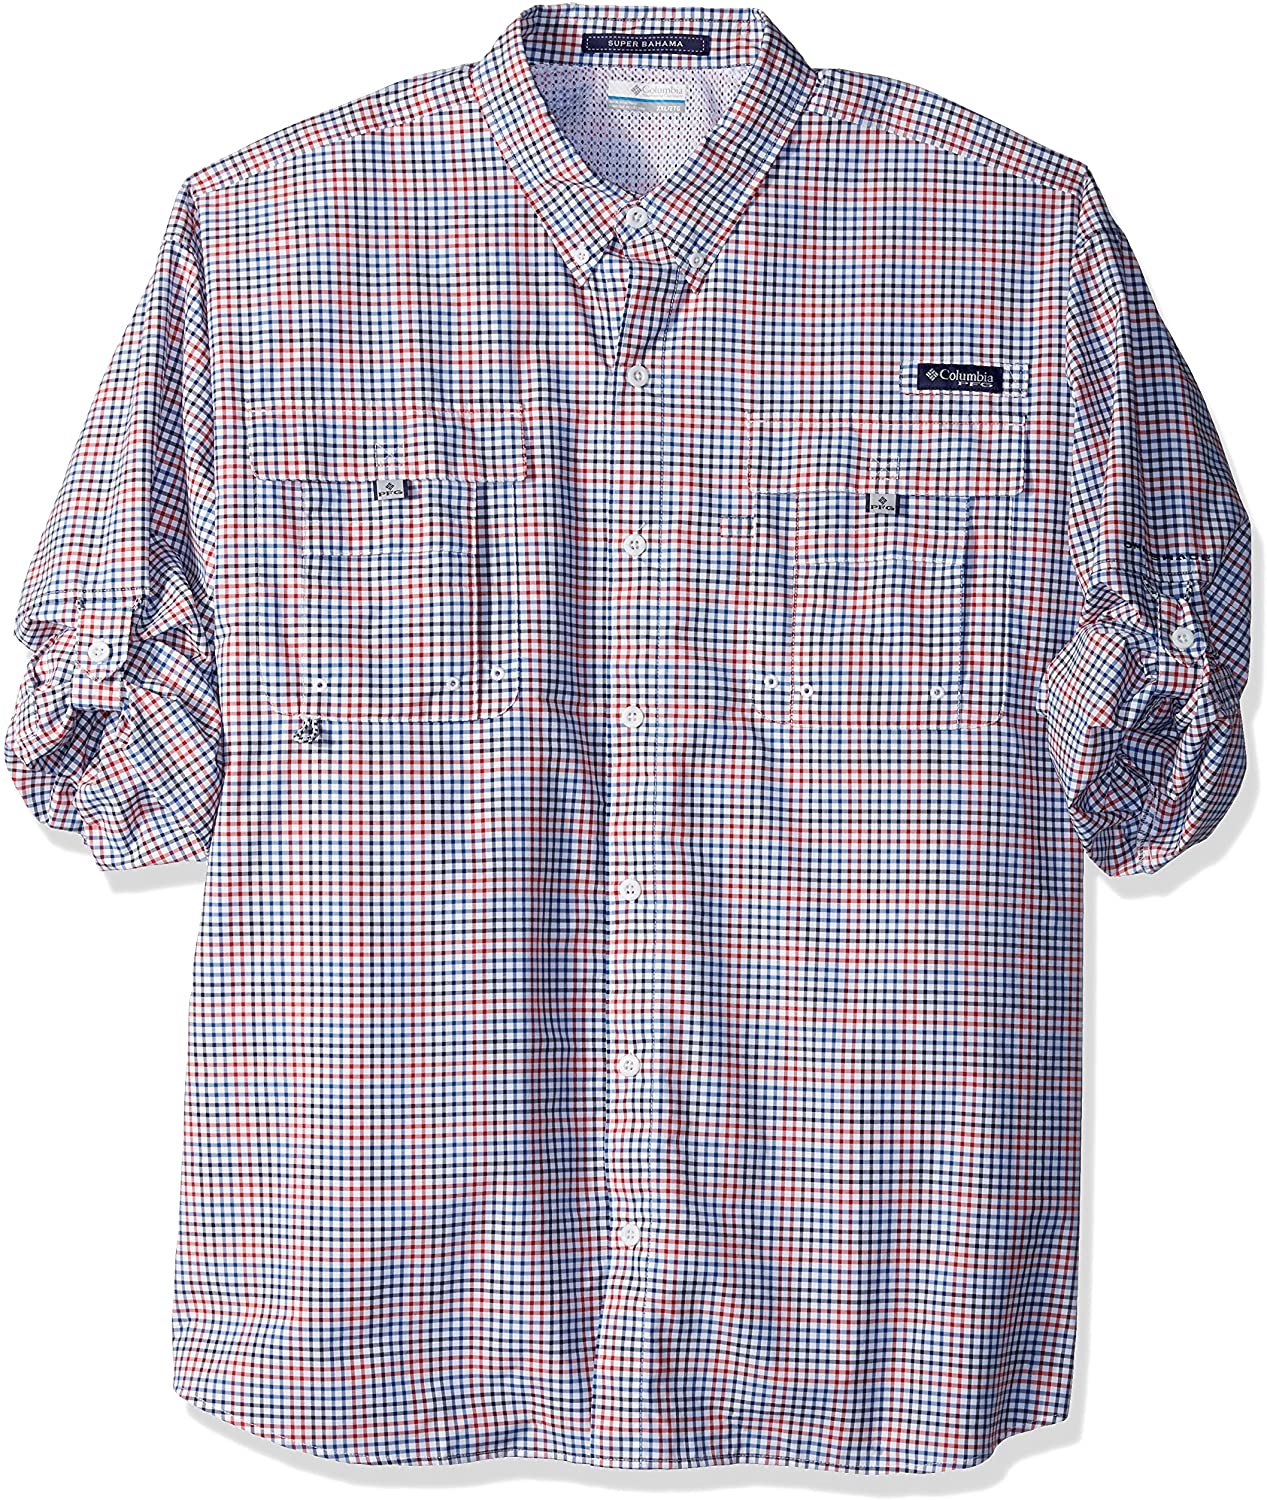 Columbia Men's Super Bahama Long Sleeve Shirt, Collegiate Navy Multi Plaid, X-Large